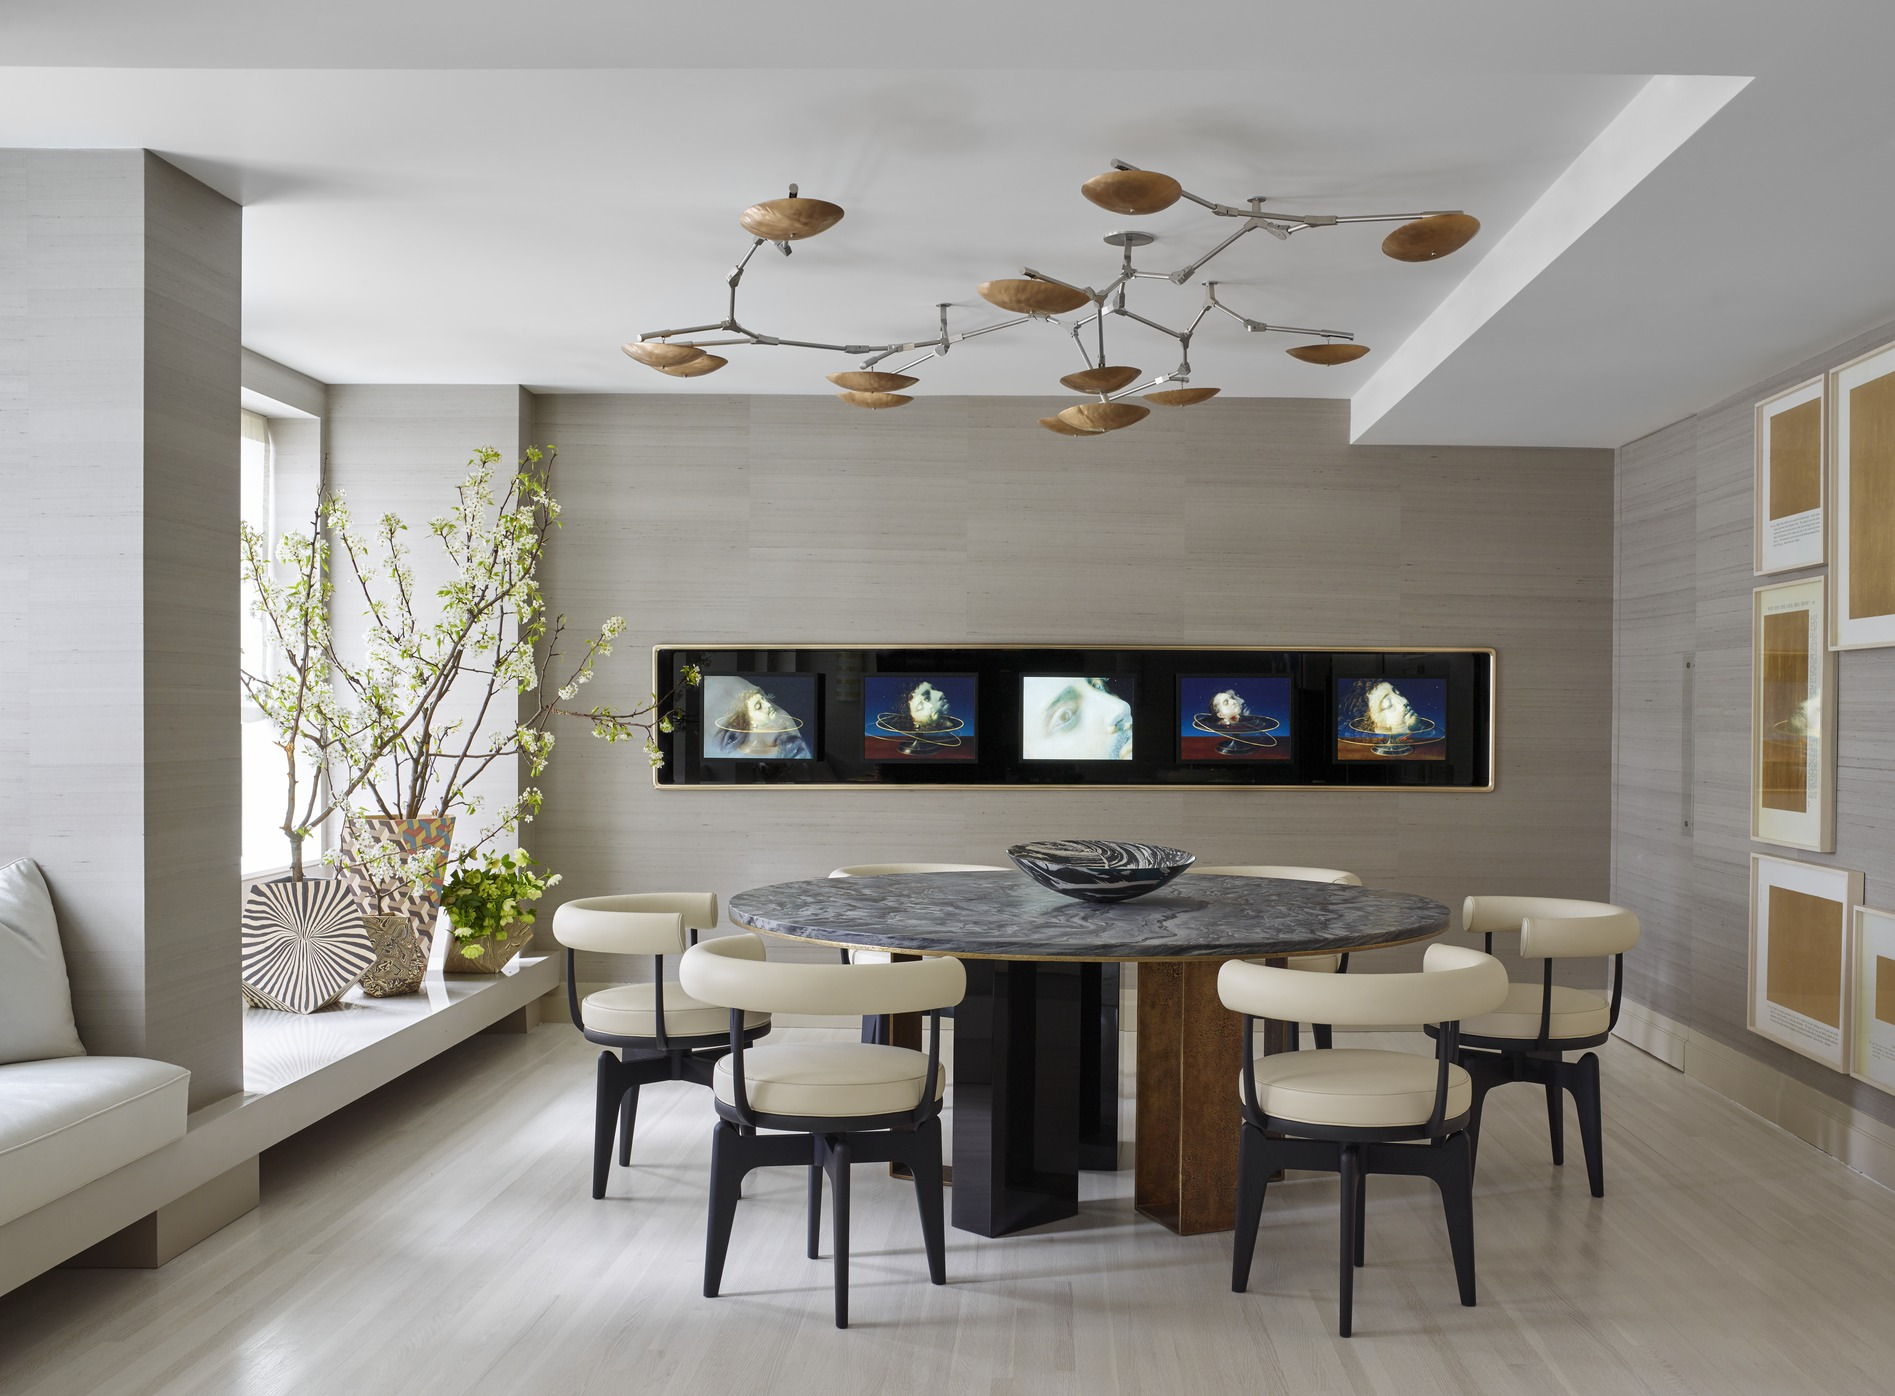 Pictures of 25 Modern Dining Room Decorating Ideas - Contemporary Dining Room Furniture dining room design ideas